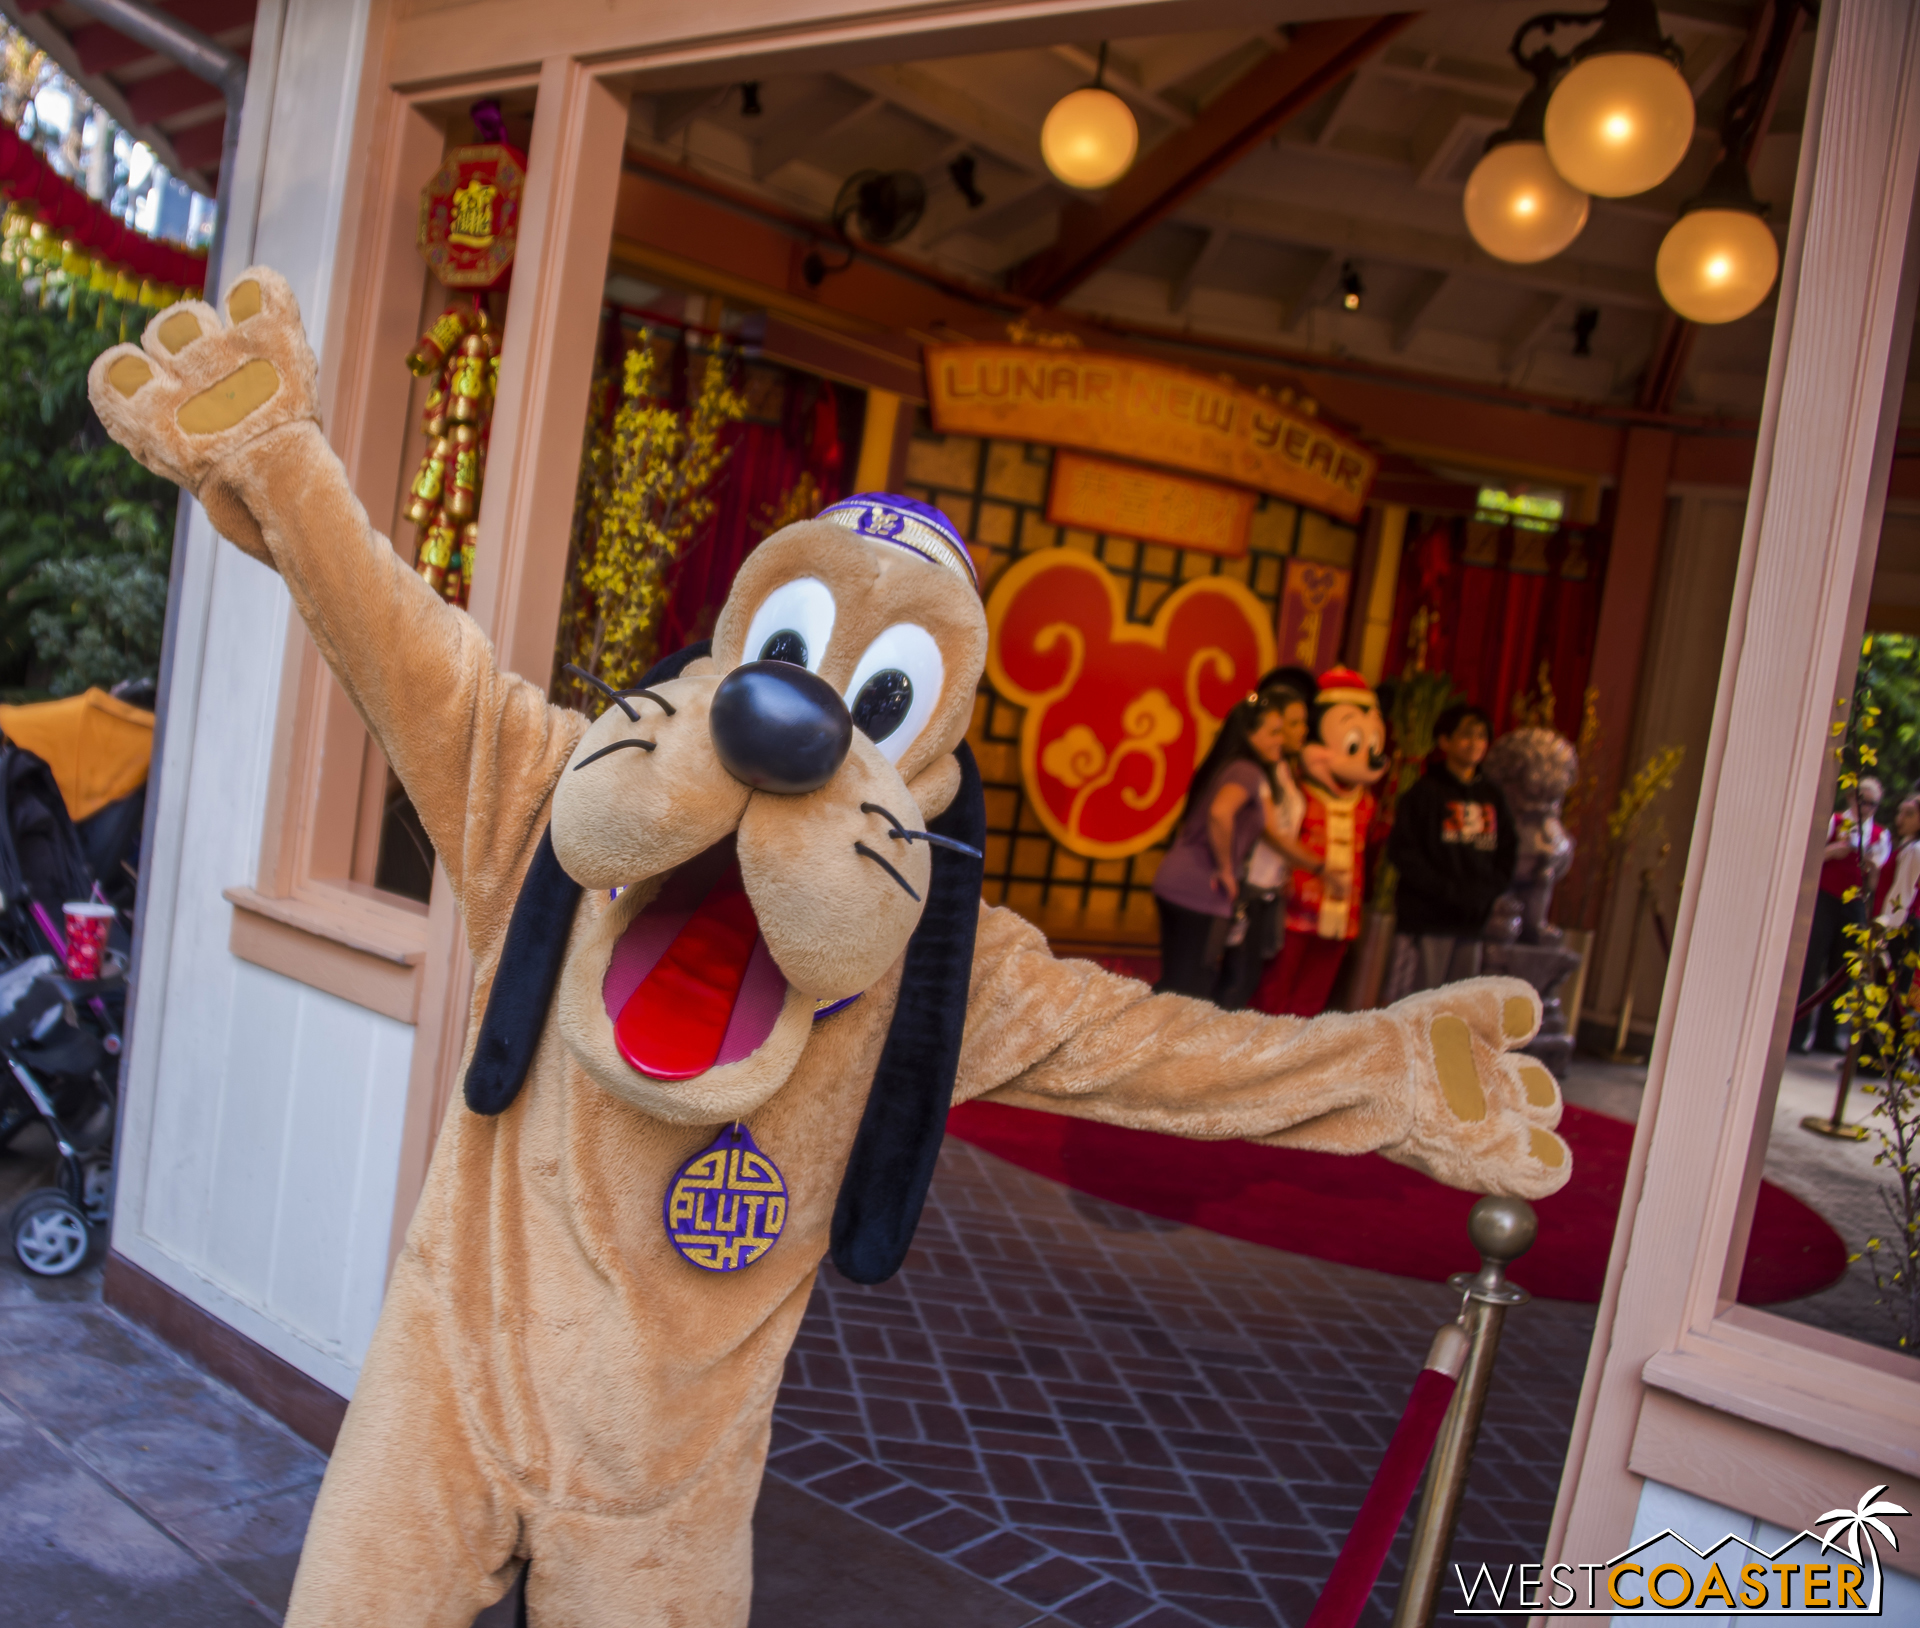 Pluto was very excited this is his year. Did I mention that already?